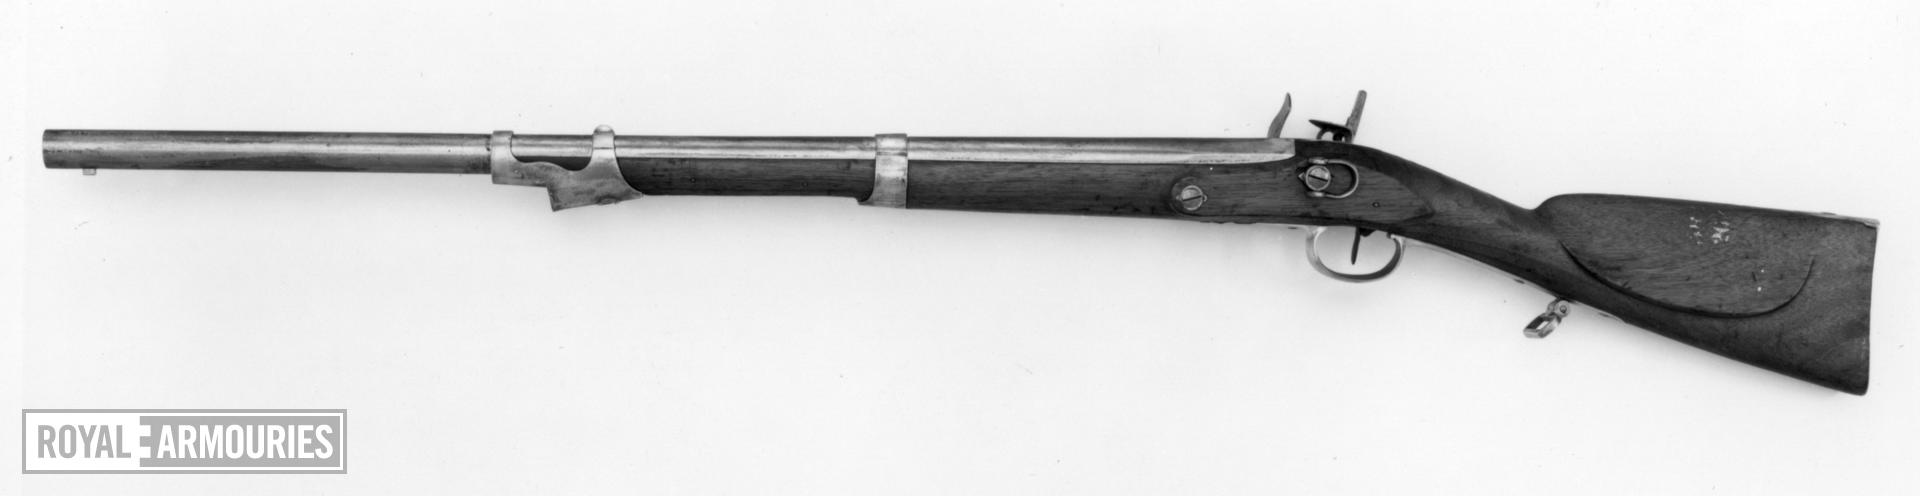 Flintlock military carbine For the Mounted Chasseurs of the Consular Guard